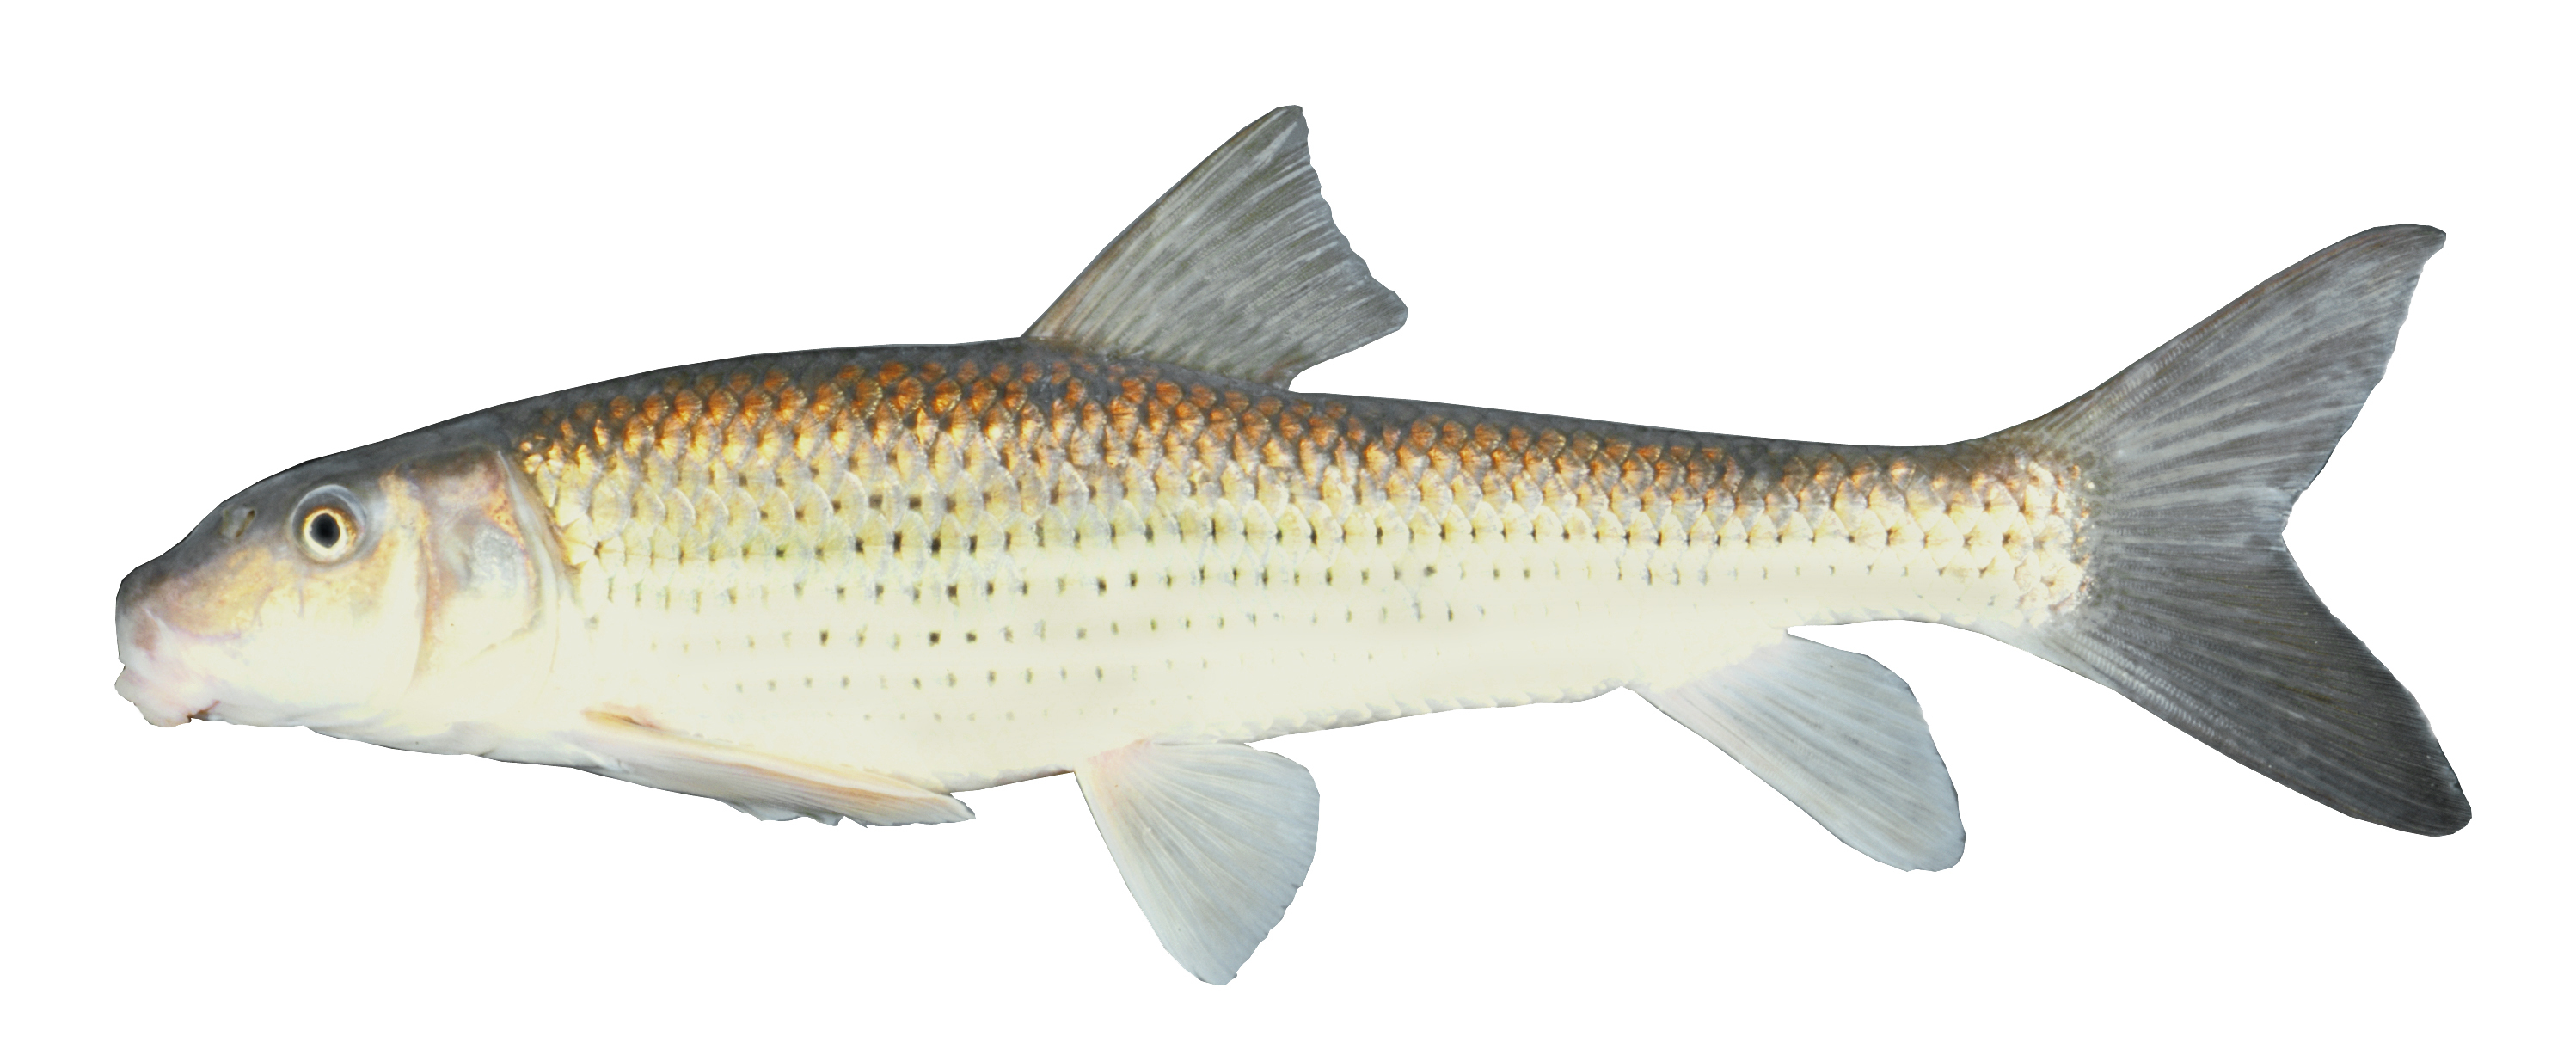 Image of Spotted sucker